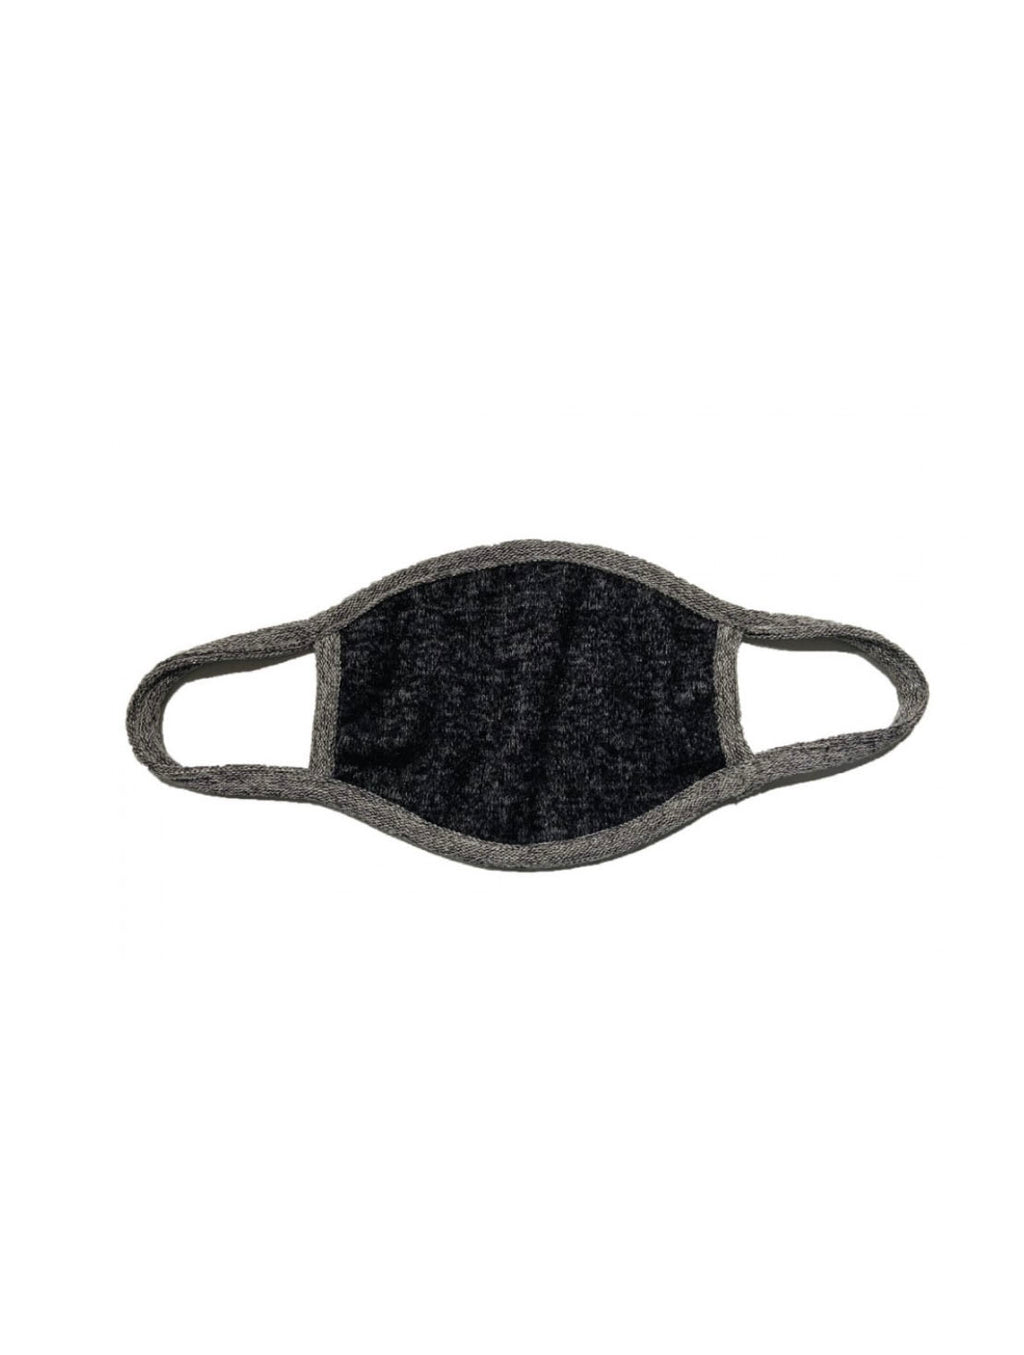 Coin 1804 Fuzzy KIDS Mask in Black